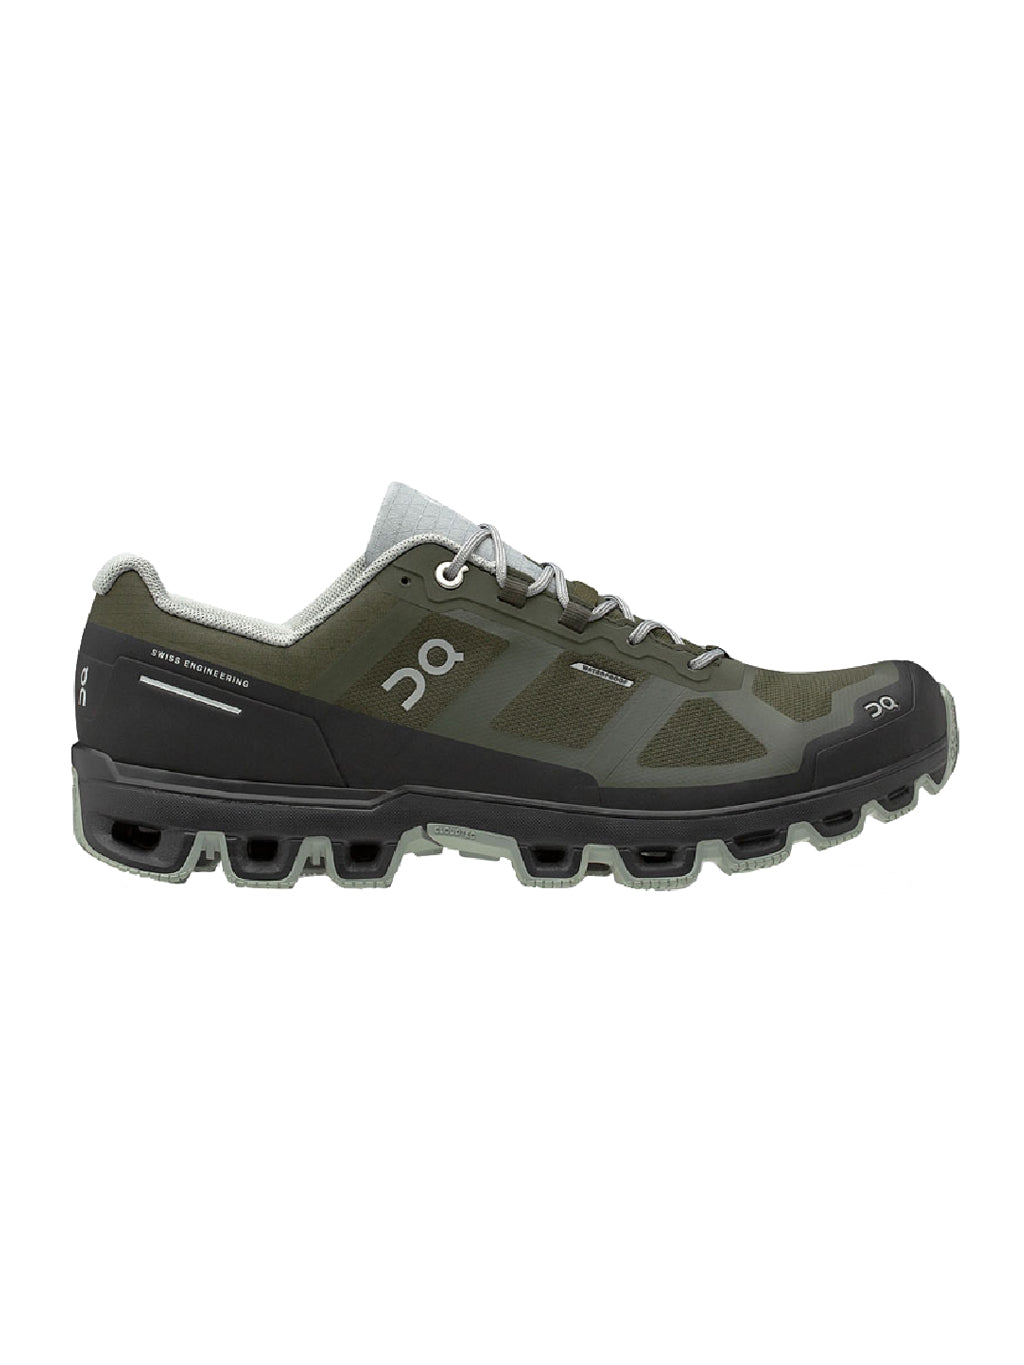 Green & Black Cloudventure Waterproof Sneakers